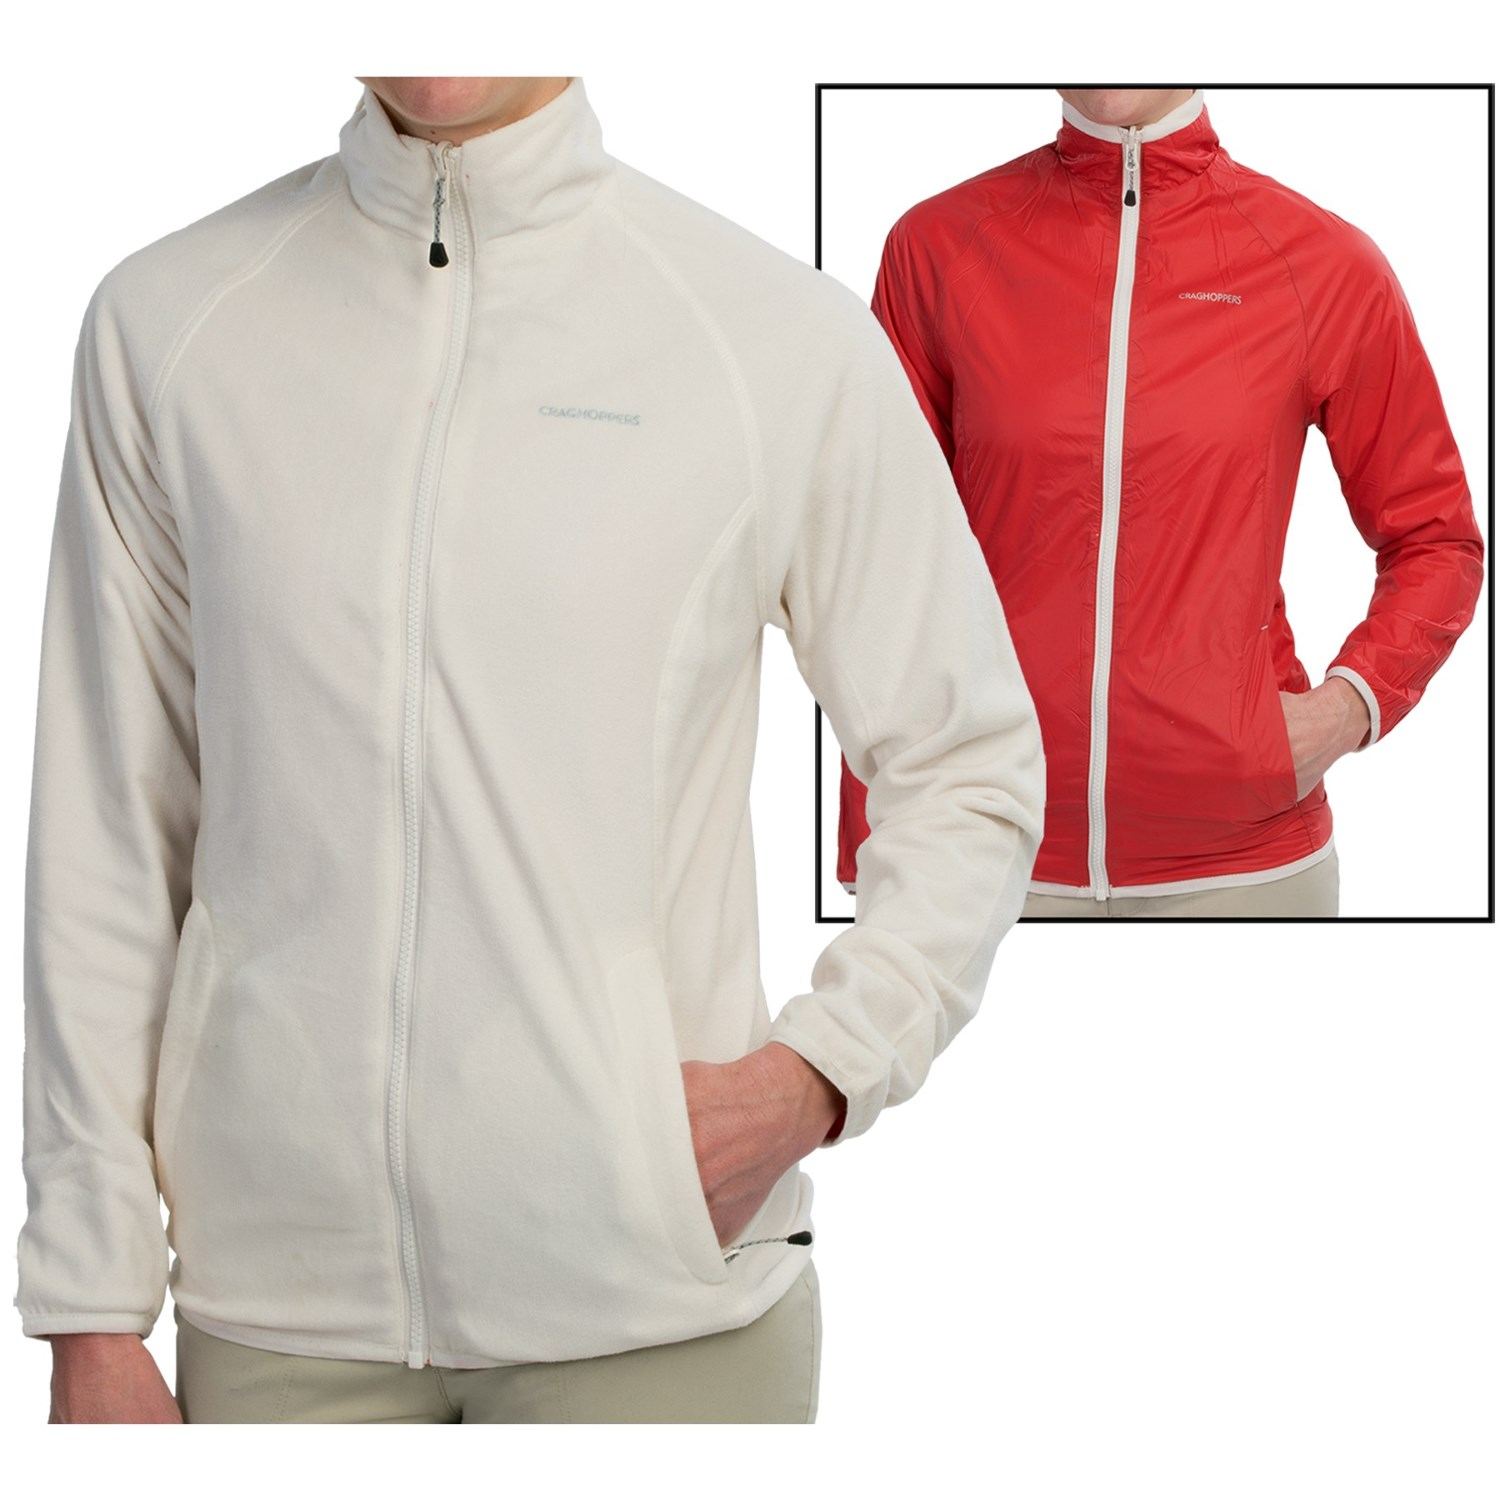 Submit Your Own Image · Craghoppers Dawa Fleece Jacket